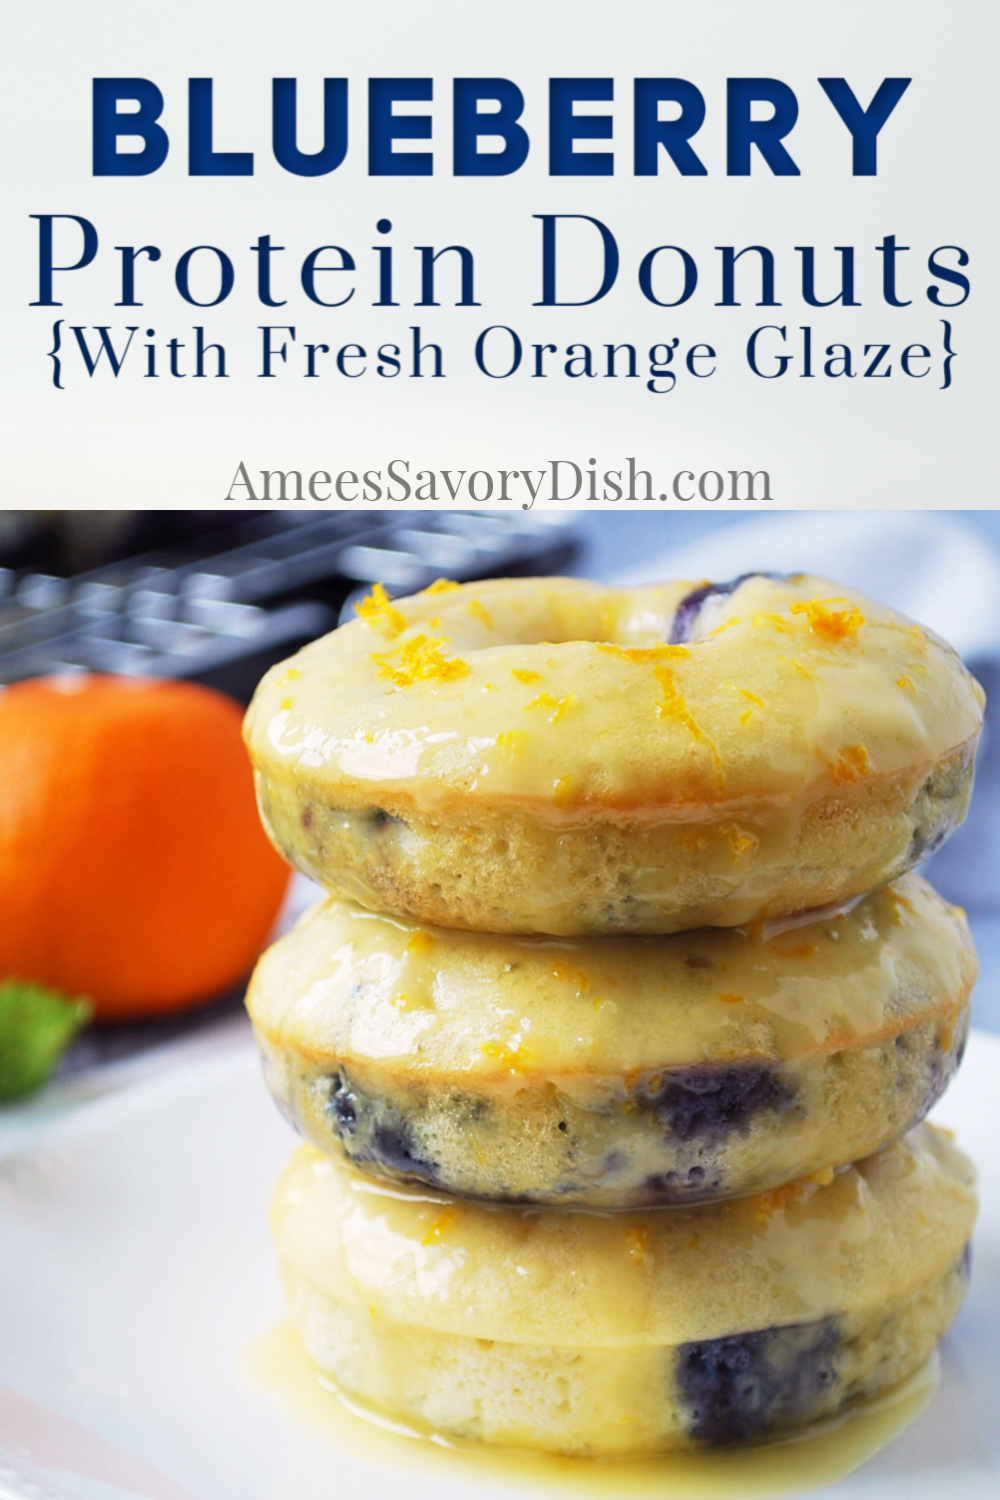 #Ad These delicious Blueberry Protein Donuts are gluten-free, full of flavor, and topped with a heavenly fresh orange glaze.  Easy and delicious! #proteindonuts #proteinrecipe #donuts #bakeddonuts #healthybaking #nakednutrition via @Ameecooks